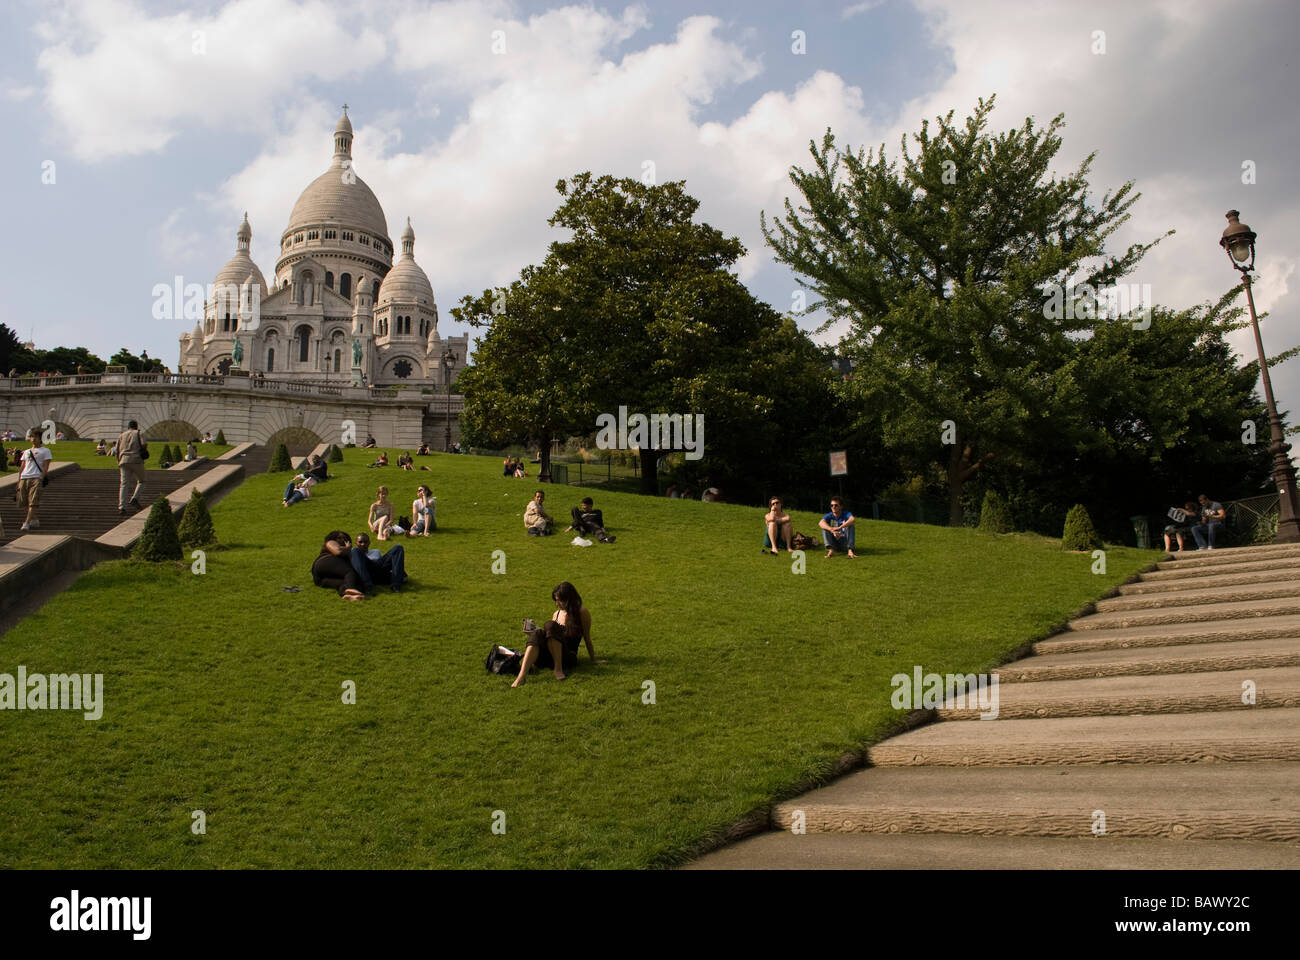 France - Basilica Sacre-Coeur  Basilica Sacre-Coeur on Montmartre hill in the French capital Paris - Stock Image